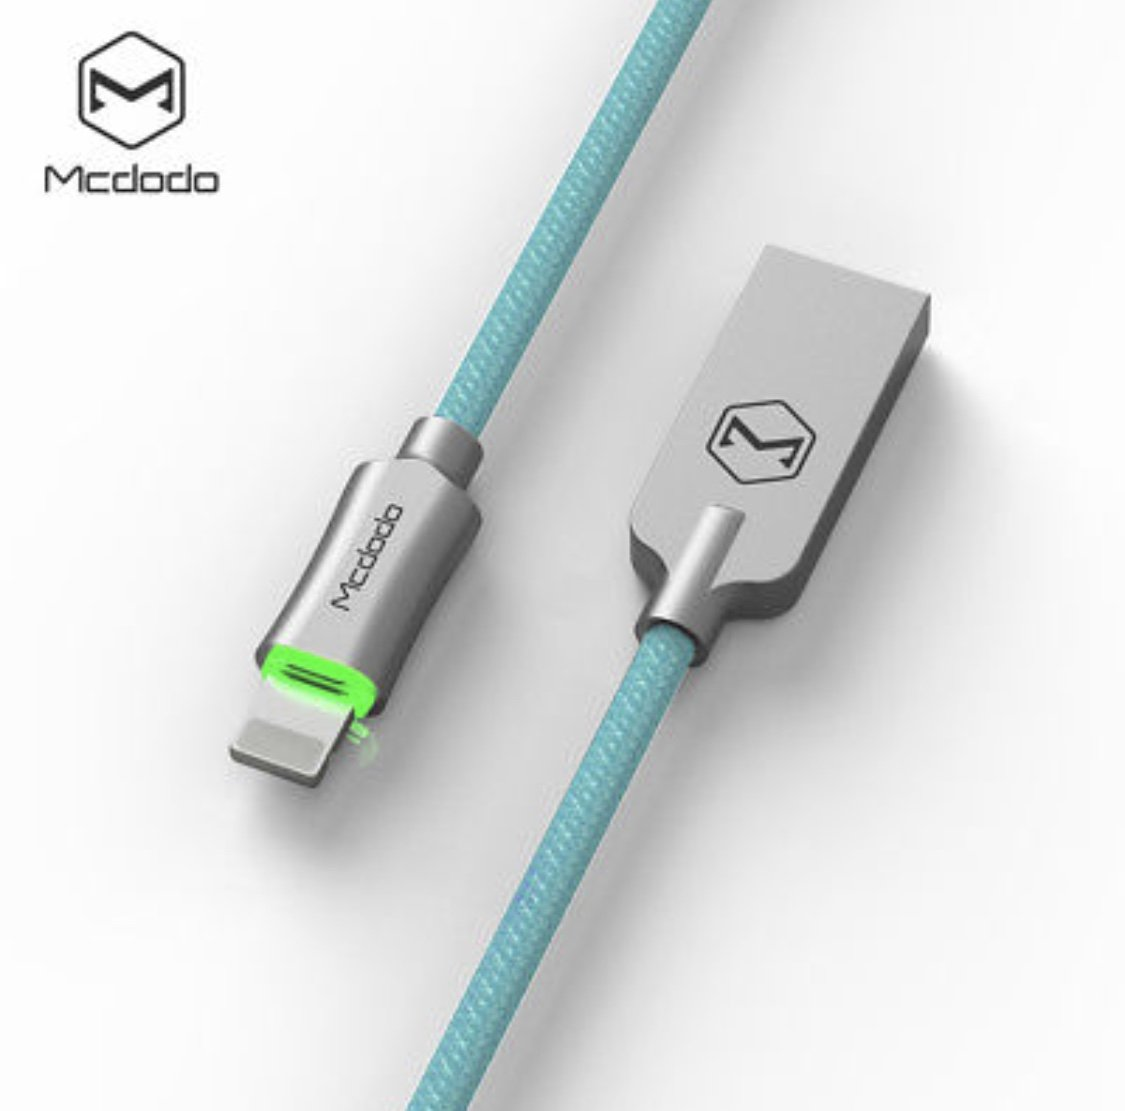 Mcdodo iPhone Smart LED Auto Disconnect Lightning nylon Braided 4FT/1.2M Sync Charge USB Data Cable For iPhone 8/8 Plus X 7/7 Plus, 6/6 Plus, 6s/6s Plus, 5s/5c/5, iPad Pro/Air /mini ,iPod (Blue)